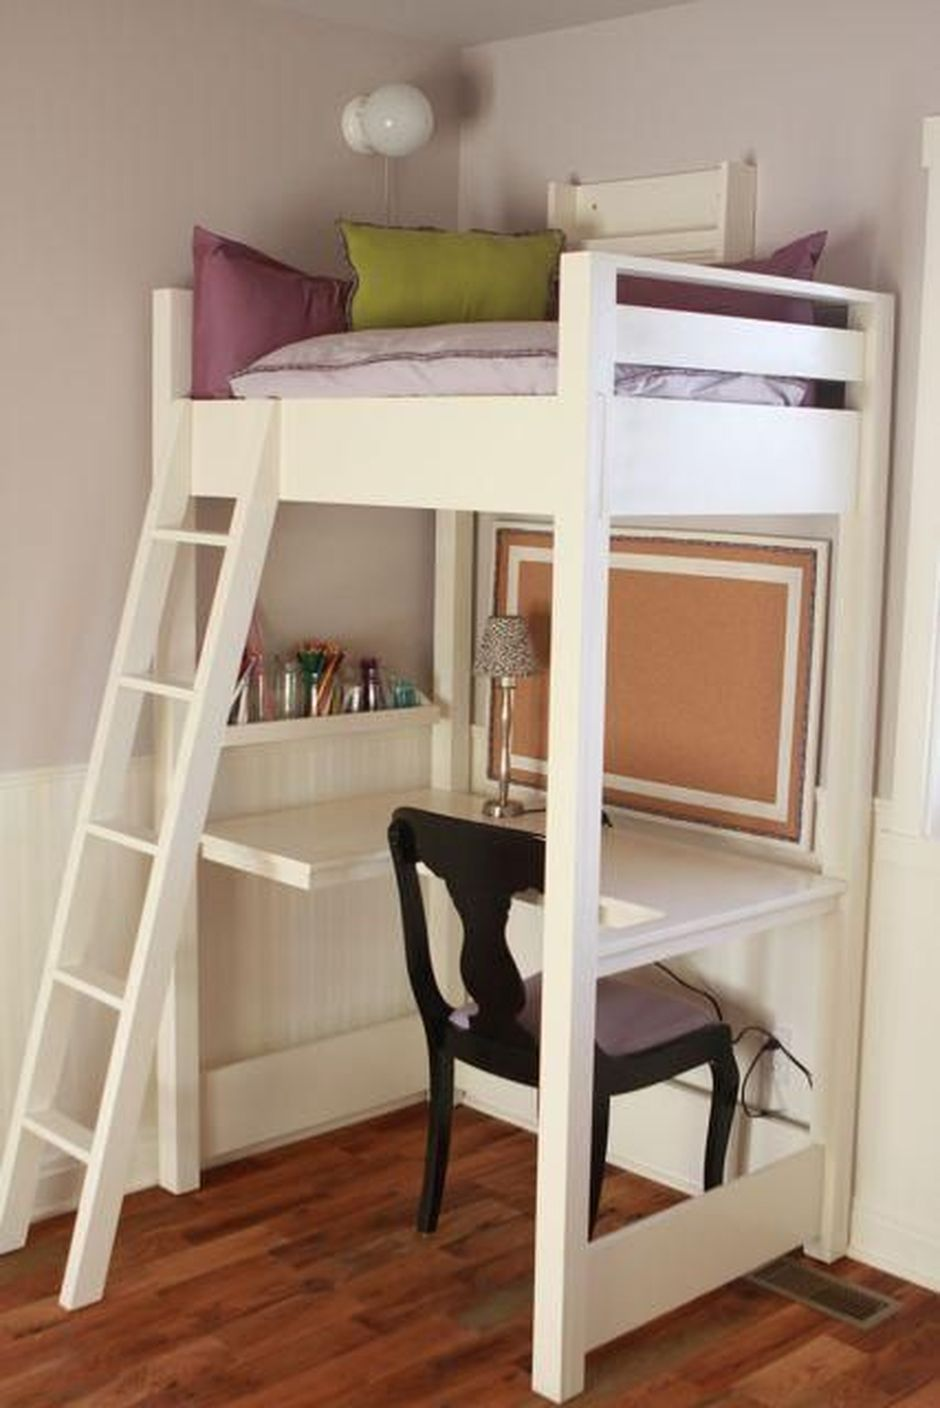 Cool Loft Bed Design Ideas For Small Room 23 Rockindeco